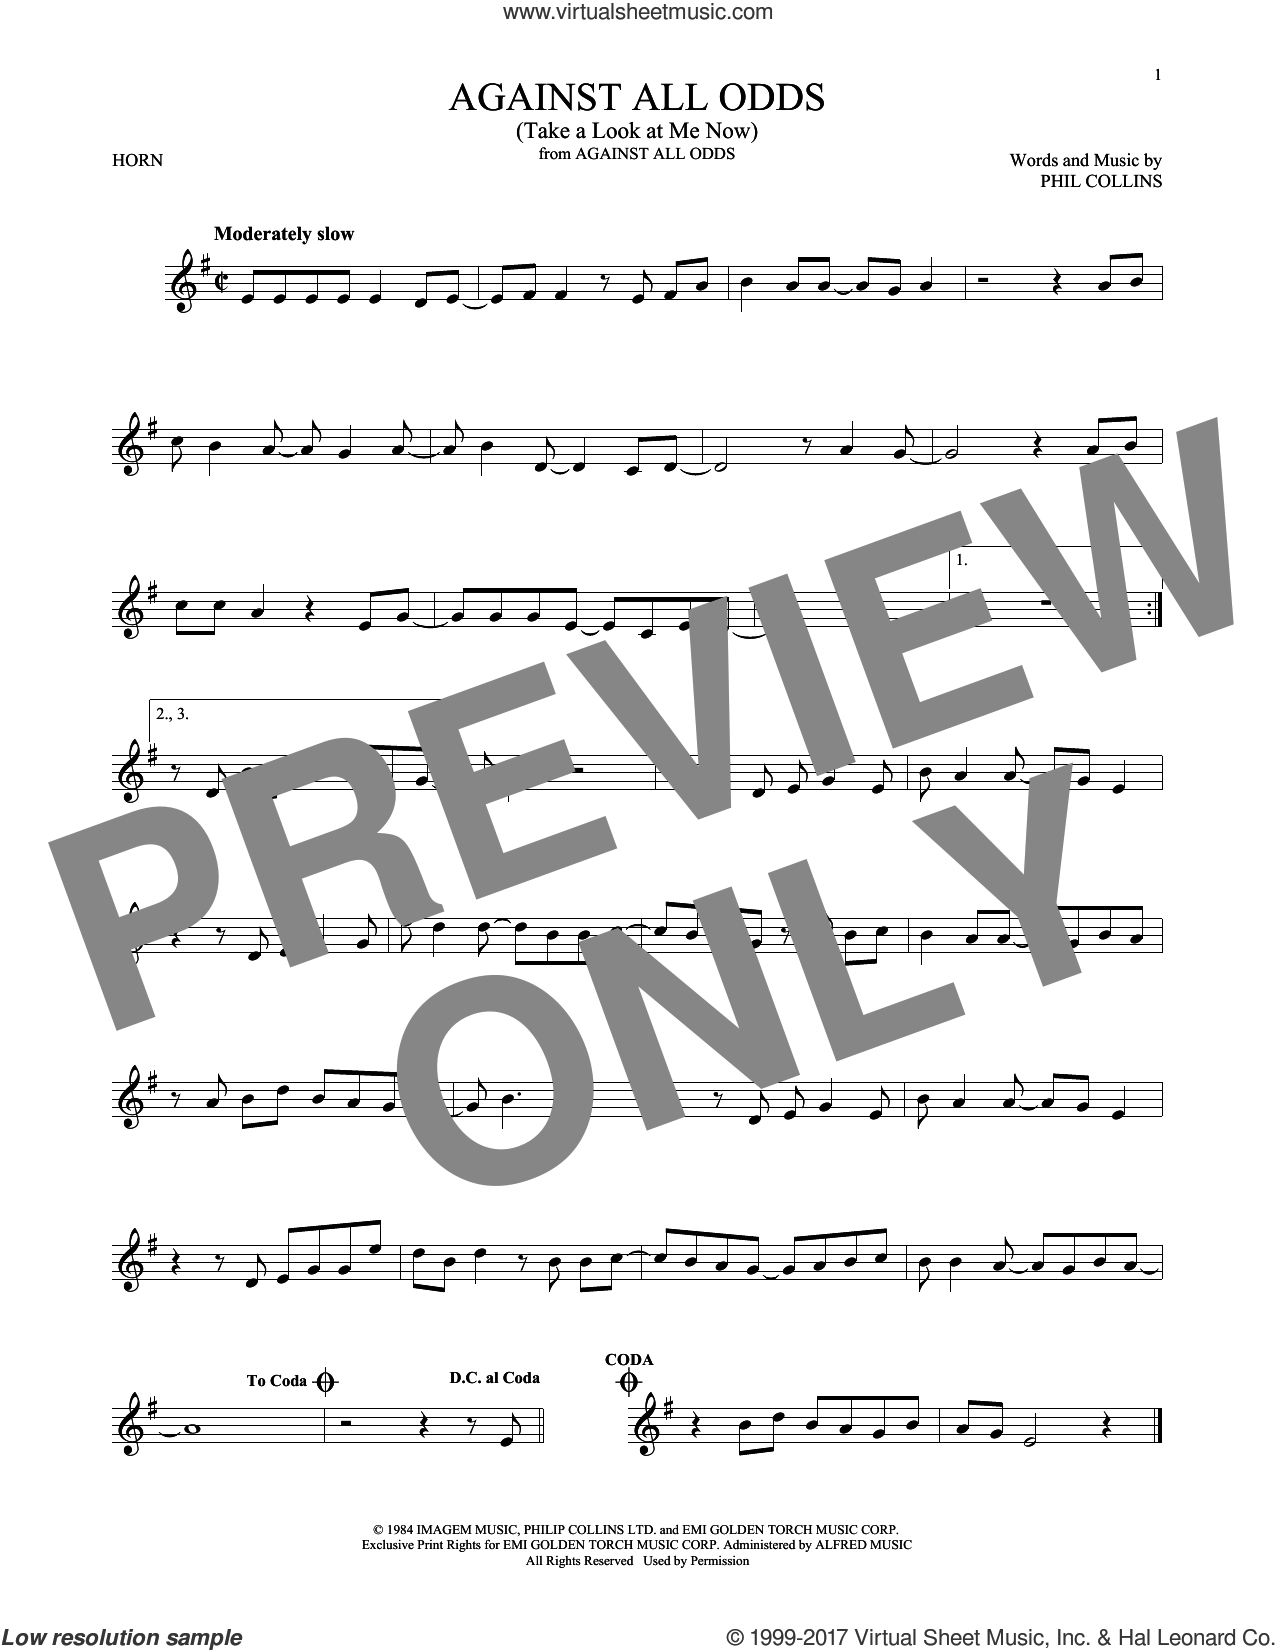 Against All Odds (Take A Look At Me Now) sheet music for horn solo by Phil Collins, intermediate skill level